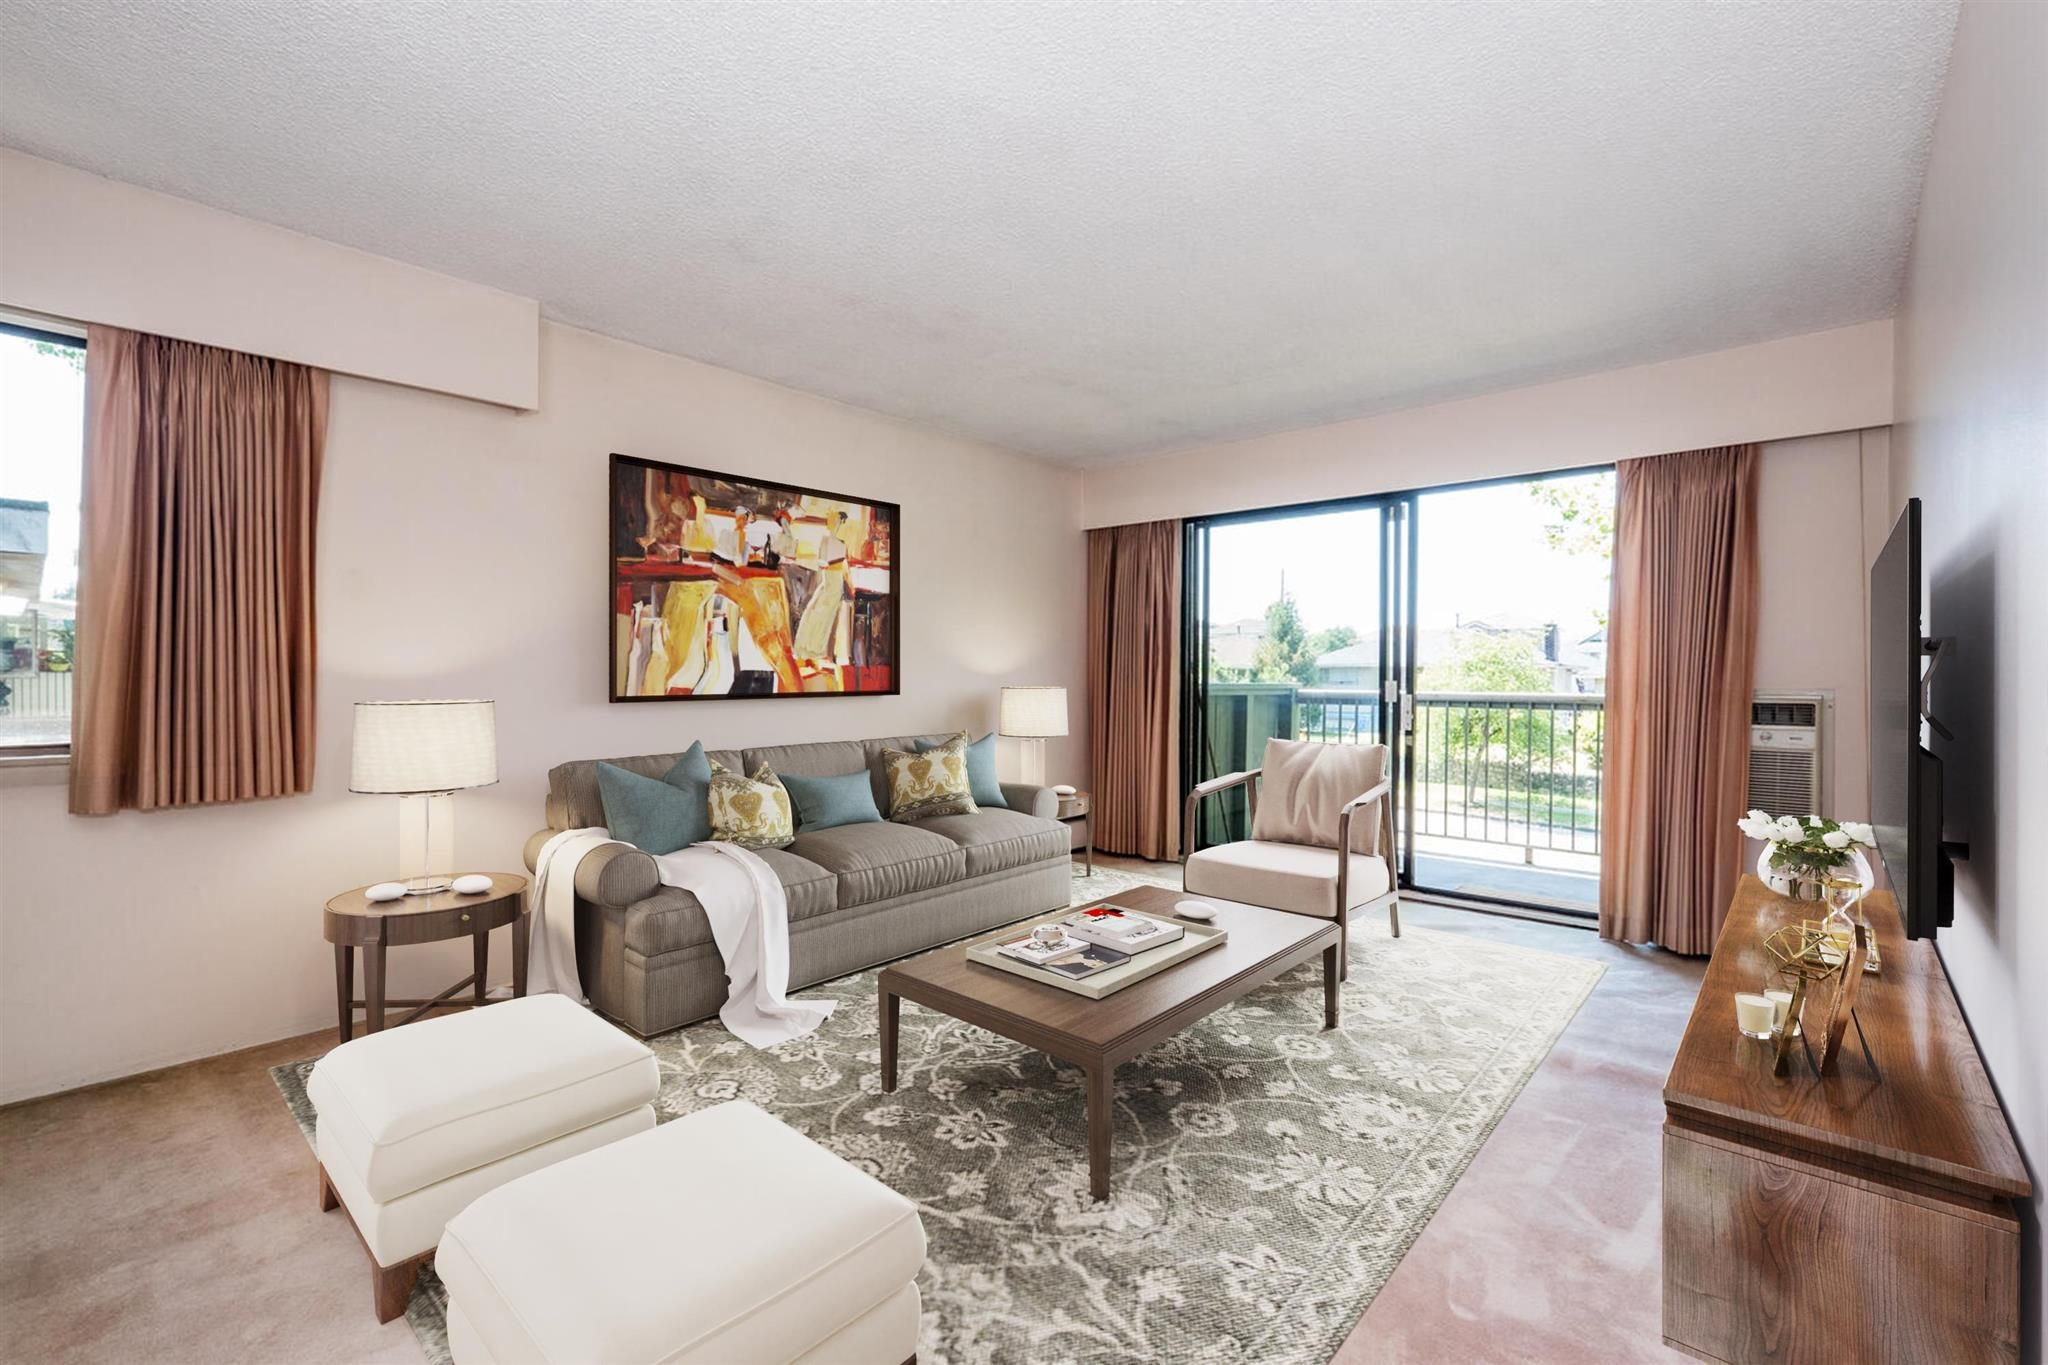 """Photo 3: Photos: 209 2600 E 49TH Avenue in Vancouver: Killarney VE Condo for sale in """"Southwinds"""" (Vancouver East)  : MLS®# R2600173"""